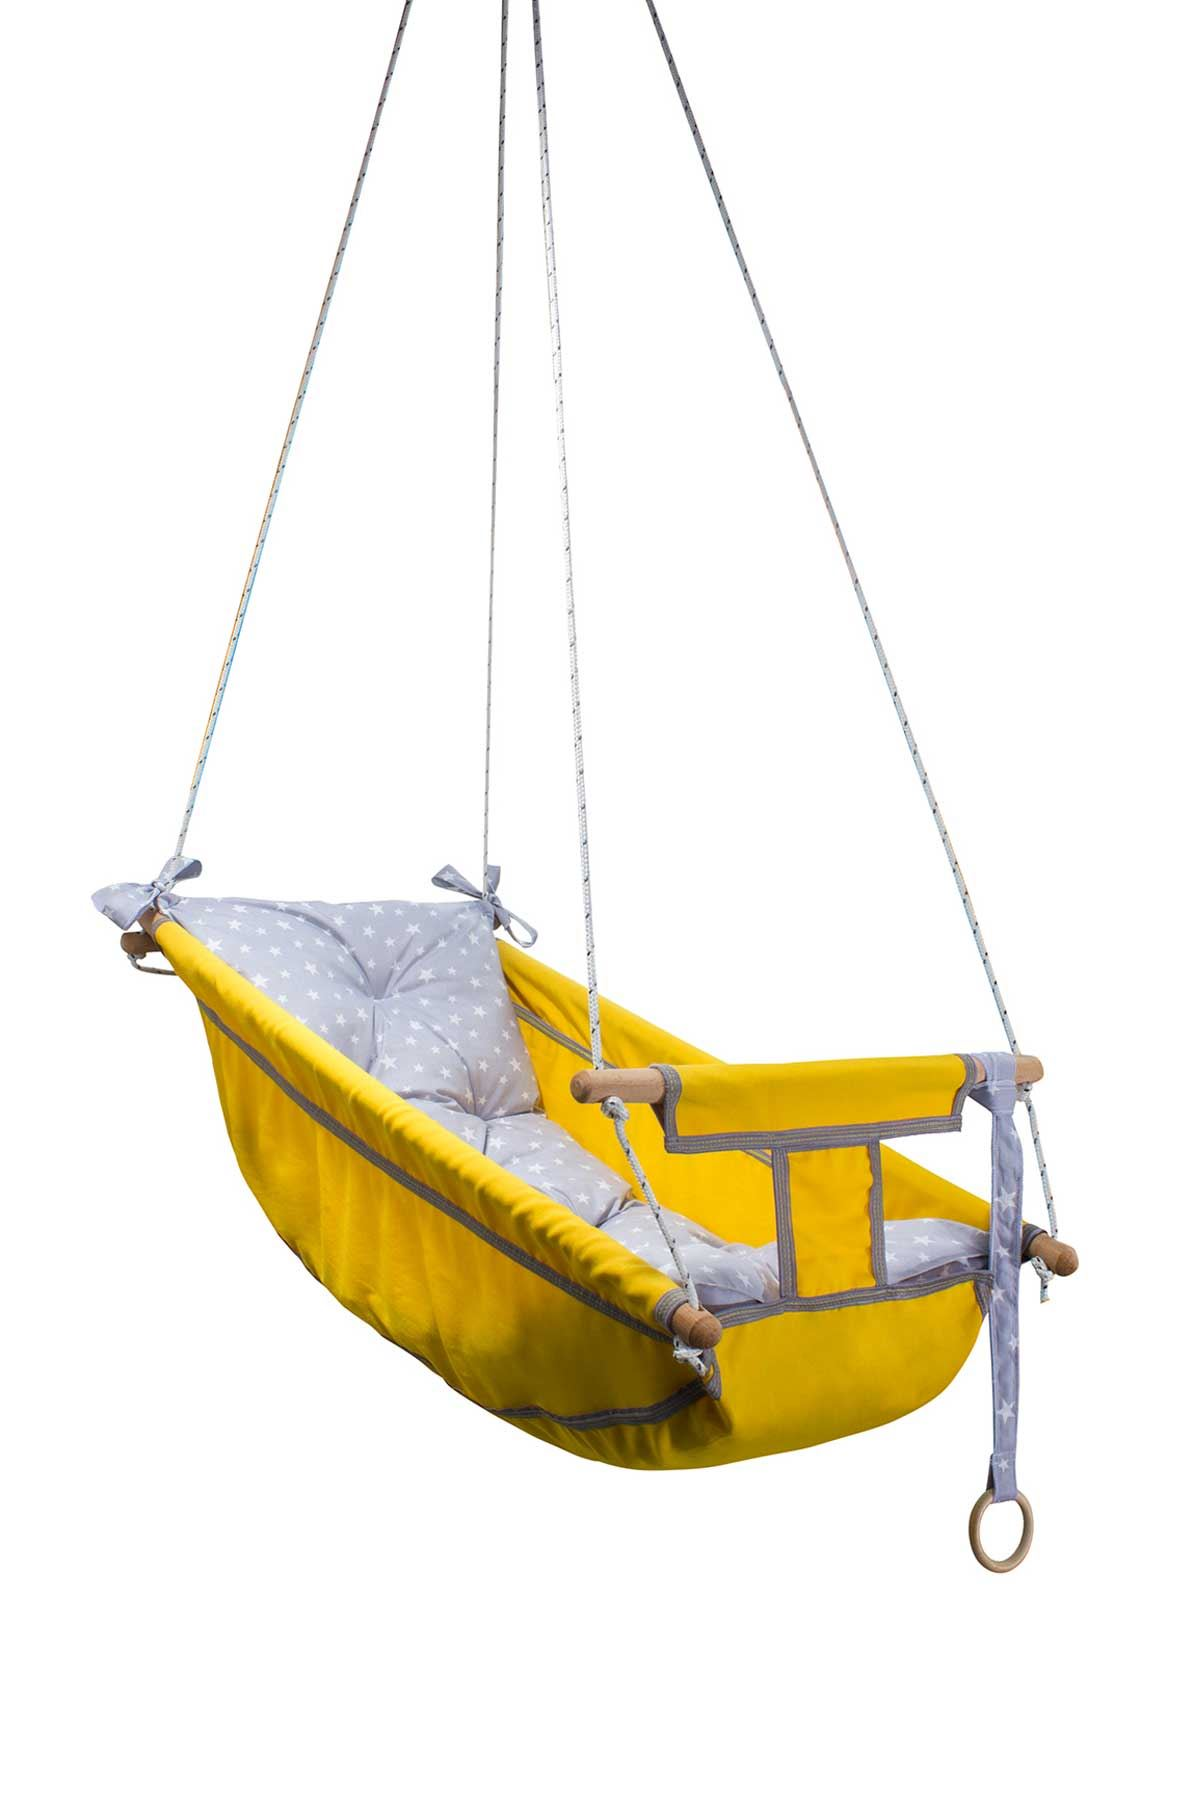 Yellow Bundera Kids Baby Sleeping Swing Wooden Hammock Cradle Swing